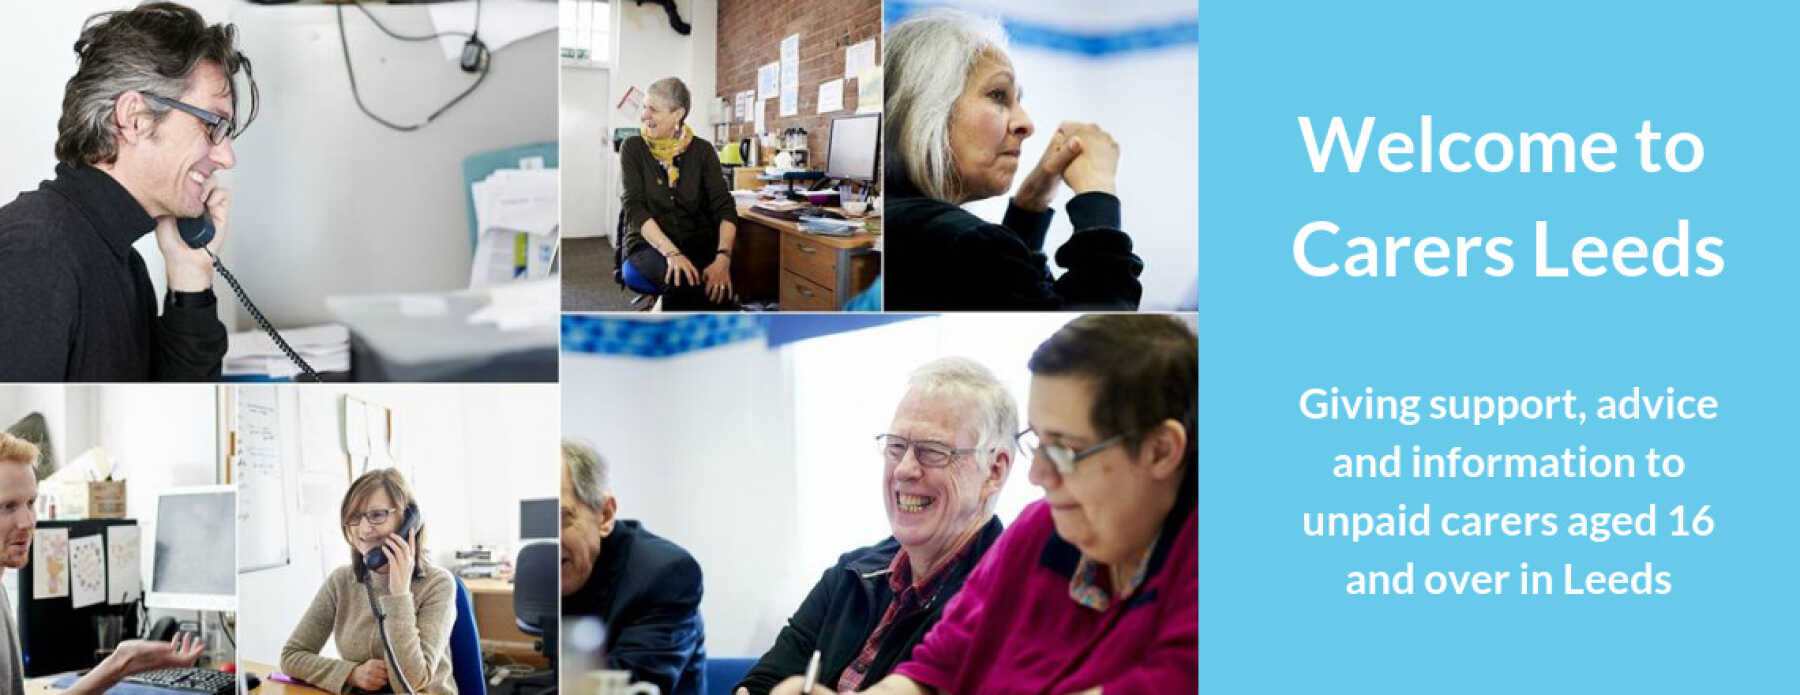 Featured Image for Carers Leeds